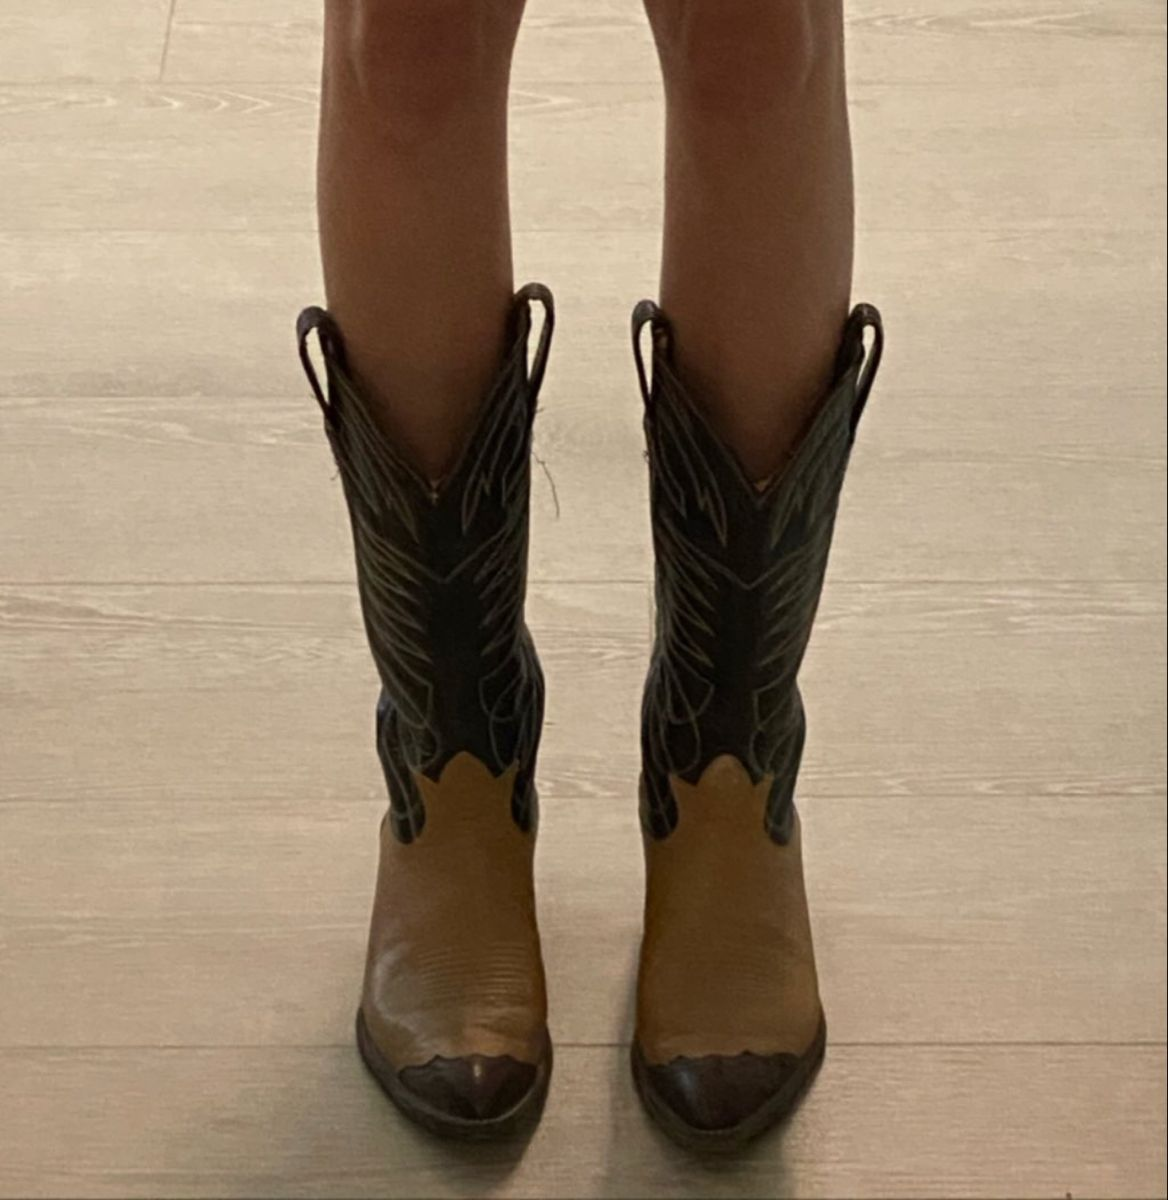 Madisonheberlie In 2021 Boots Sneakers Fashion Aesthetic Shoes